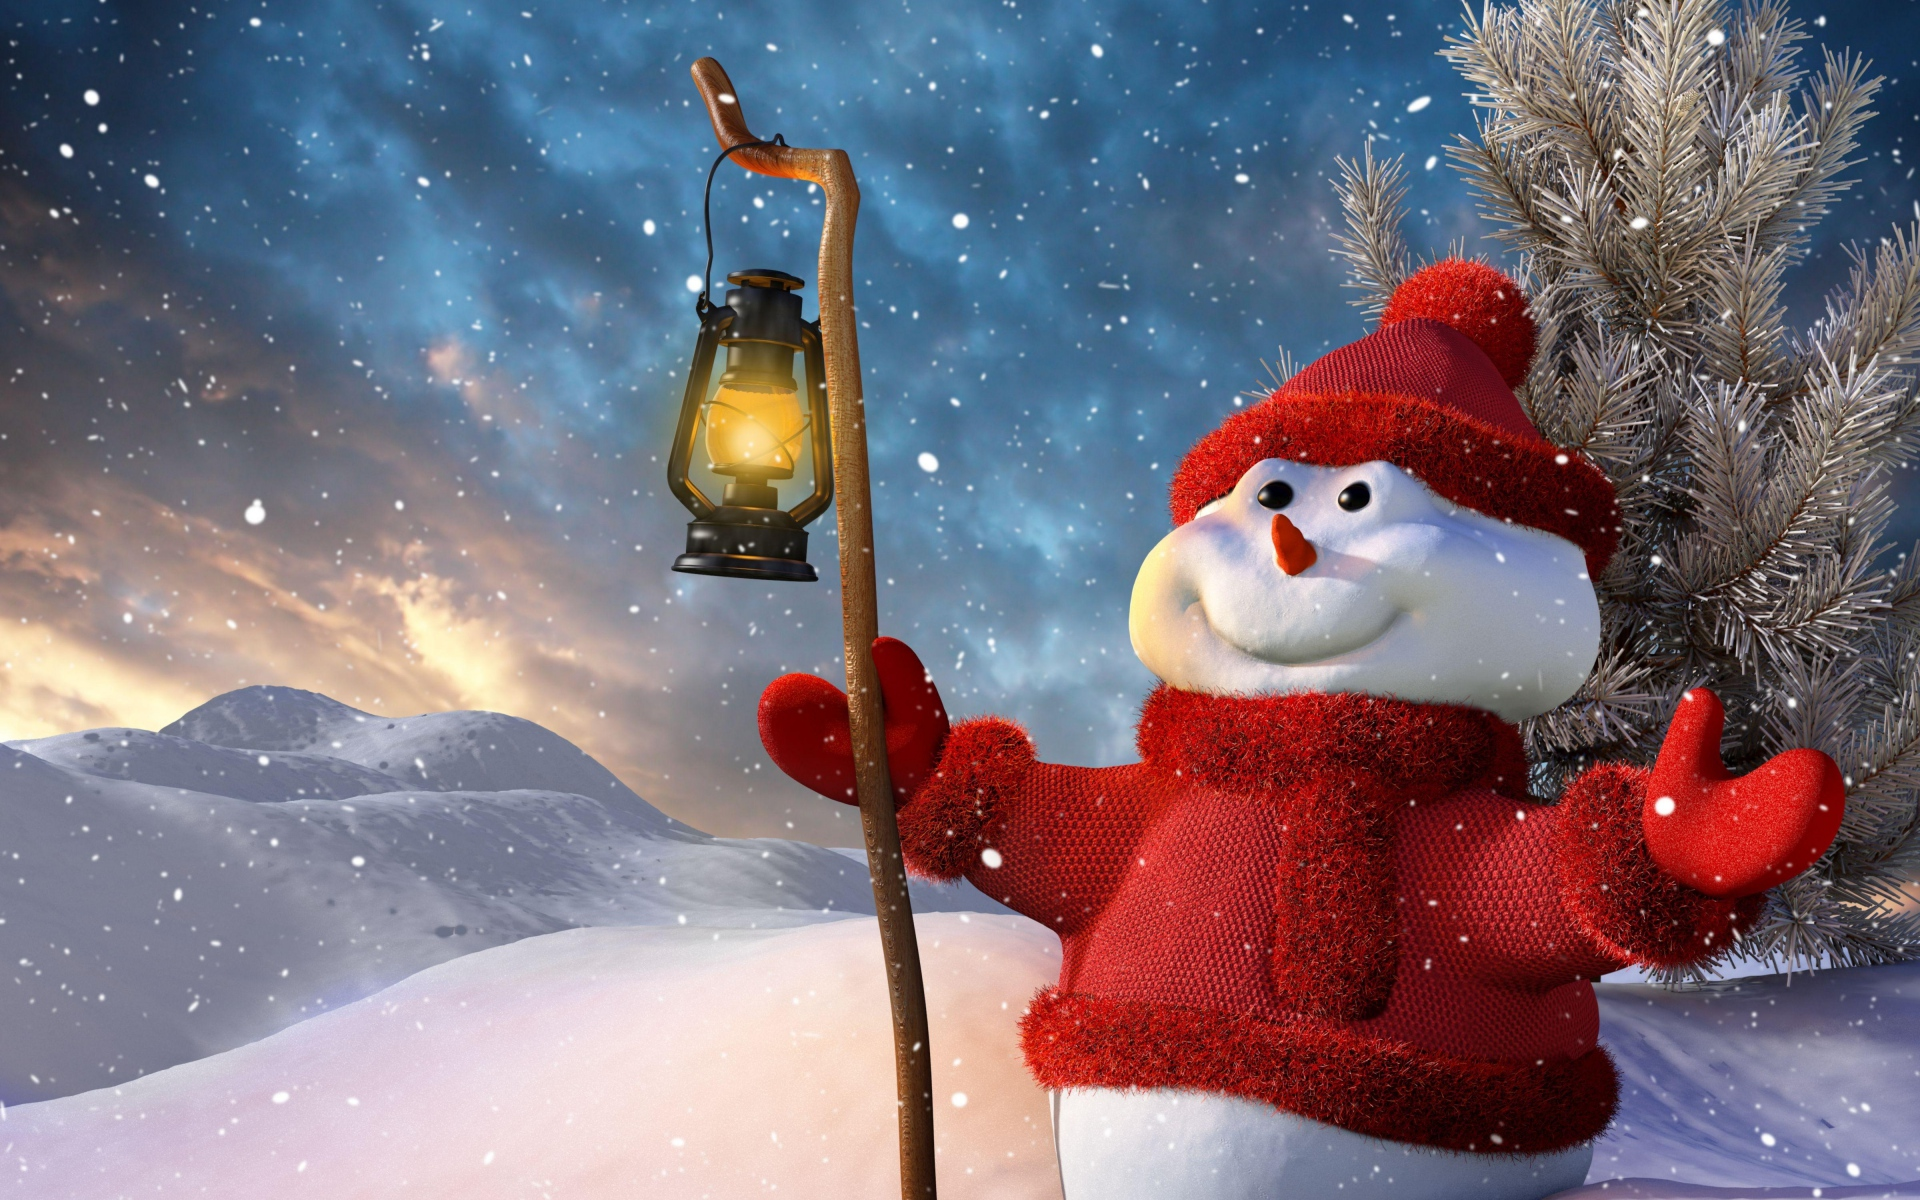 Download Wallpaper 1920x1200 New year Christmas Snowman Lamp Tree 1920x1200